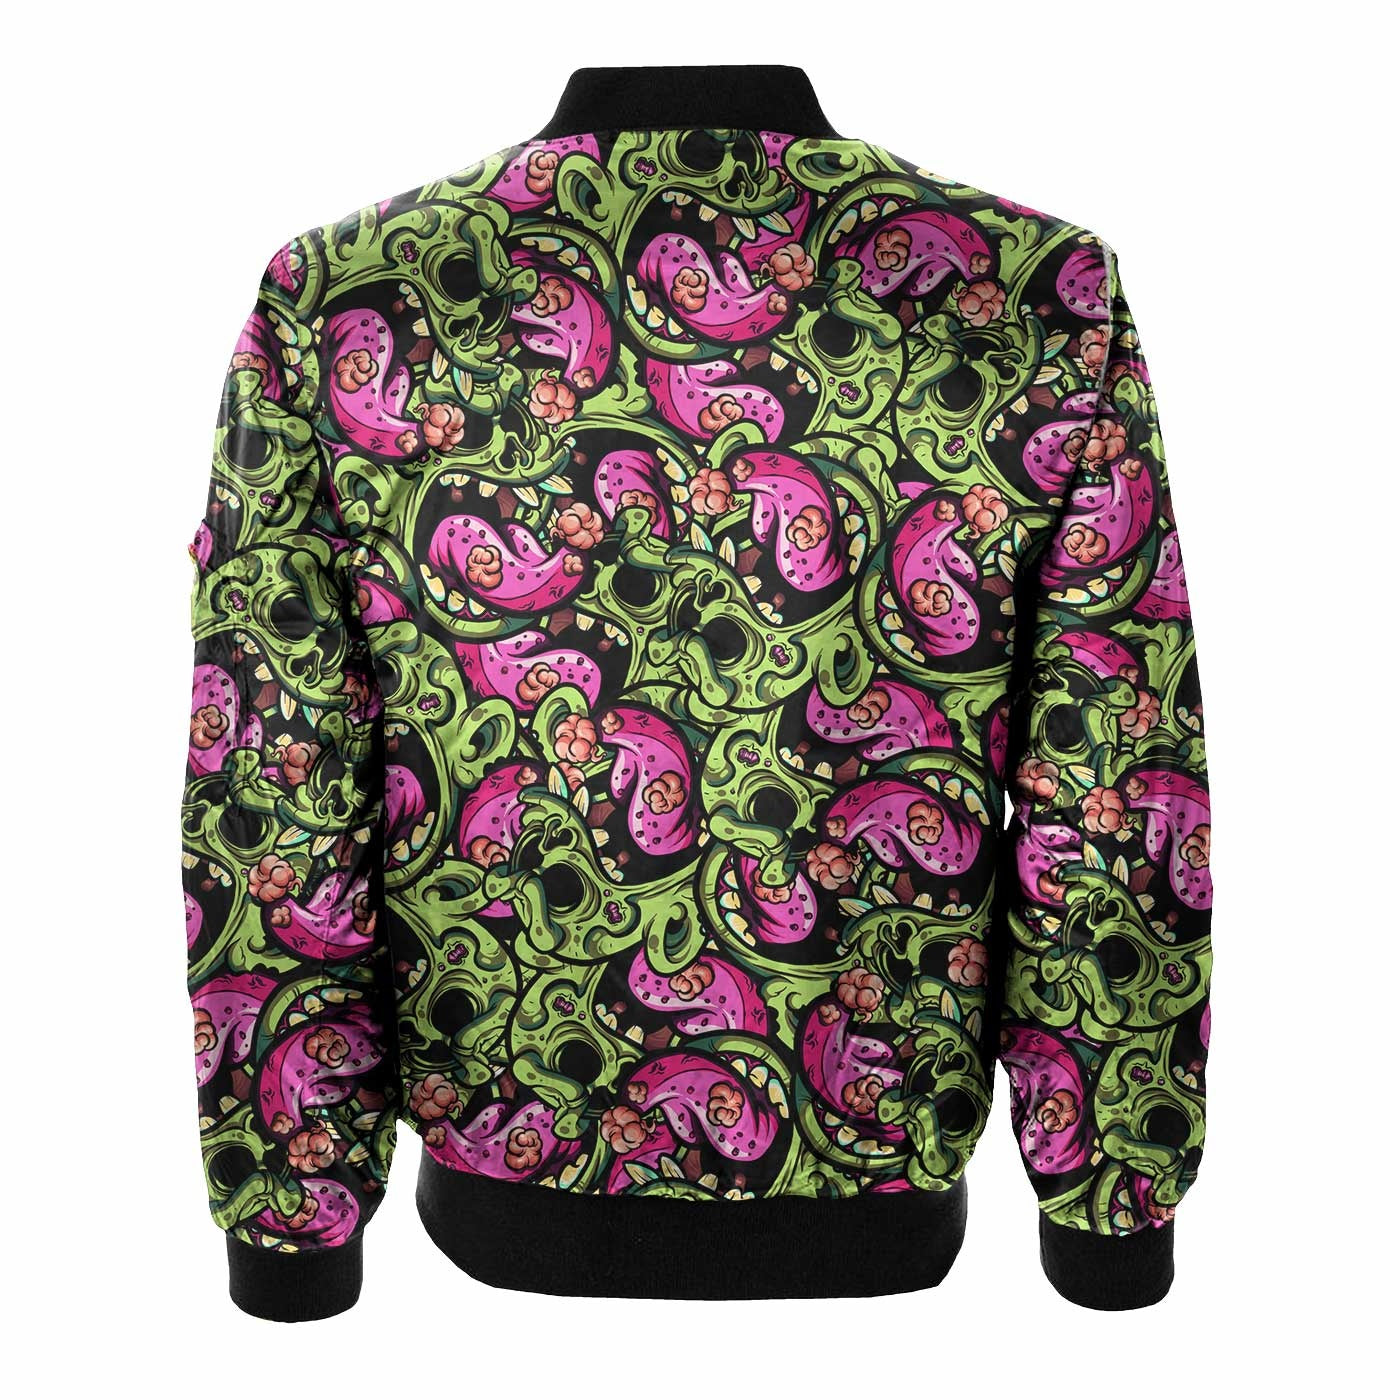 Zombies Bomber Jacket